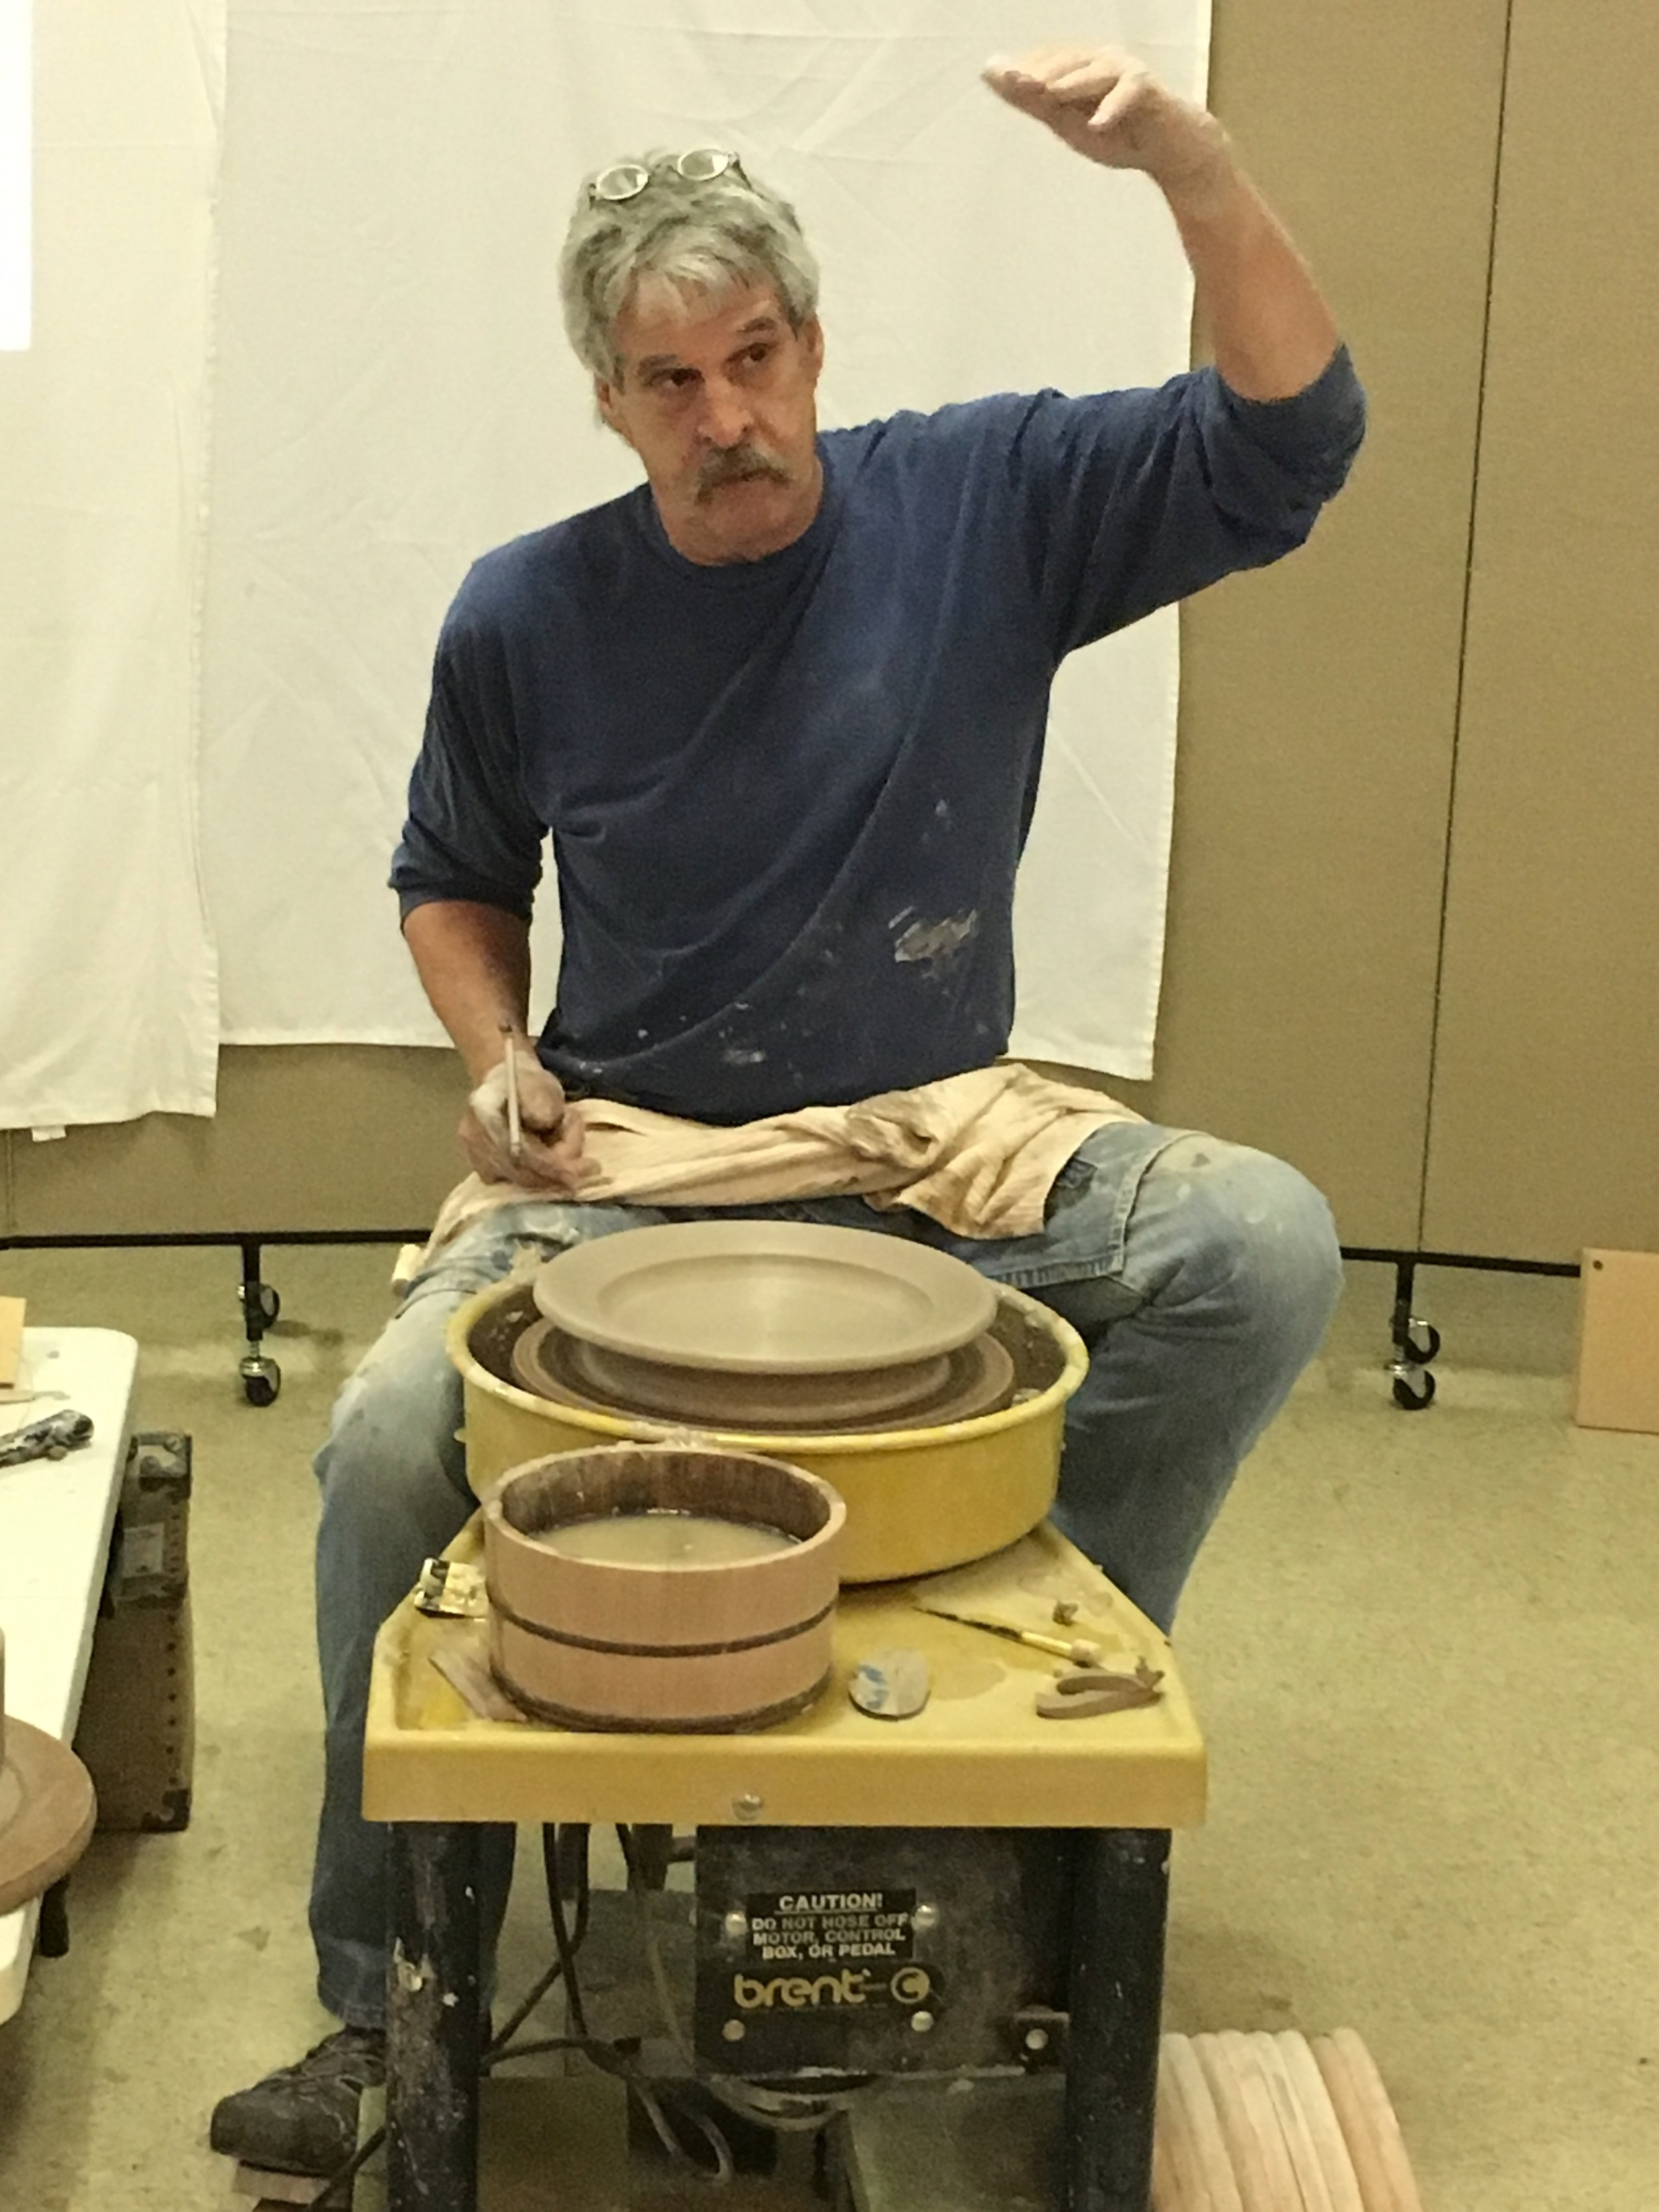 Always looking - to improve my pottery making skills, I joined a new potters group and attended a wheel throwing workshop.